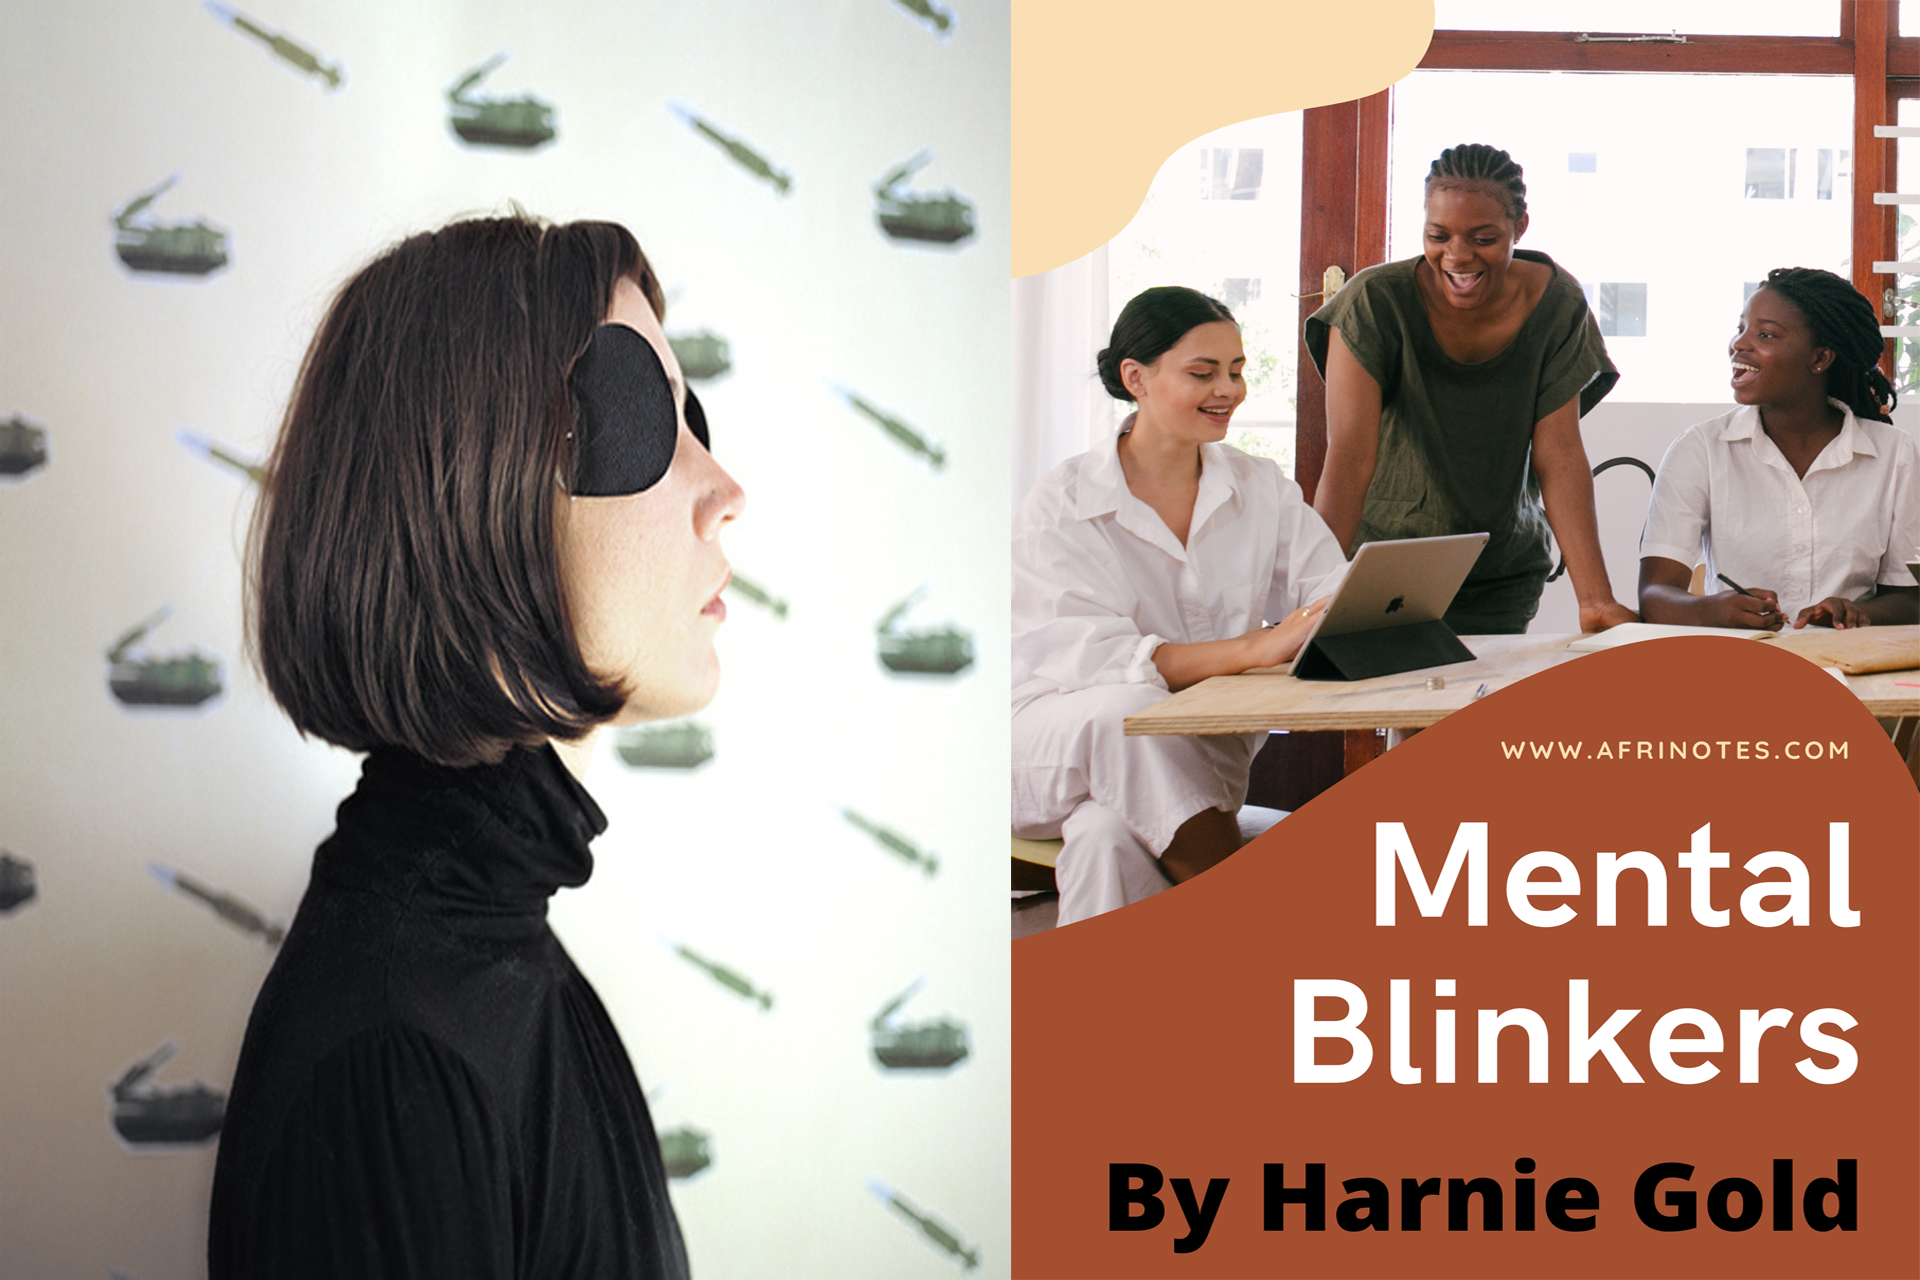 Mental Blinkers, By Harnie Gold